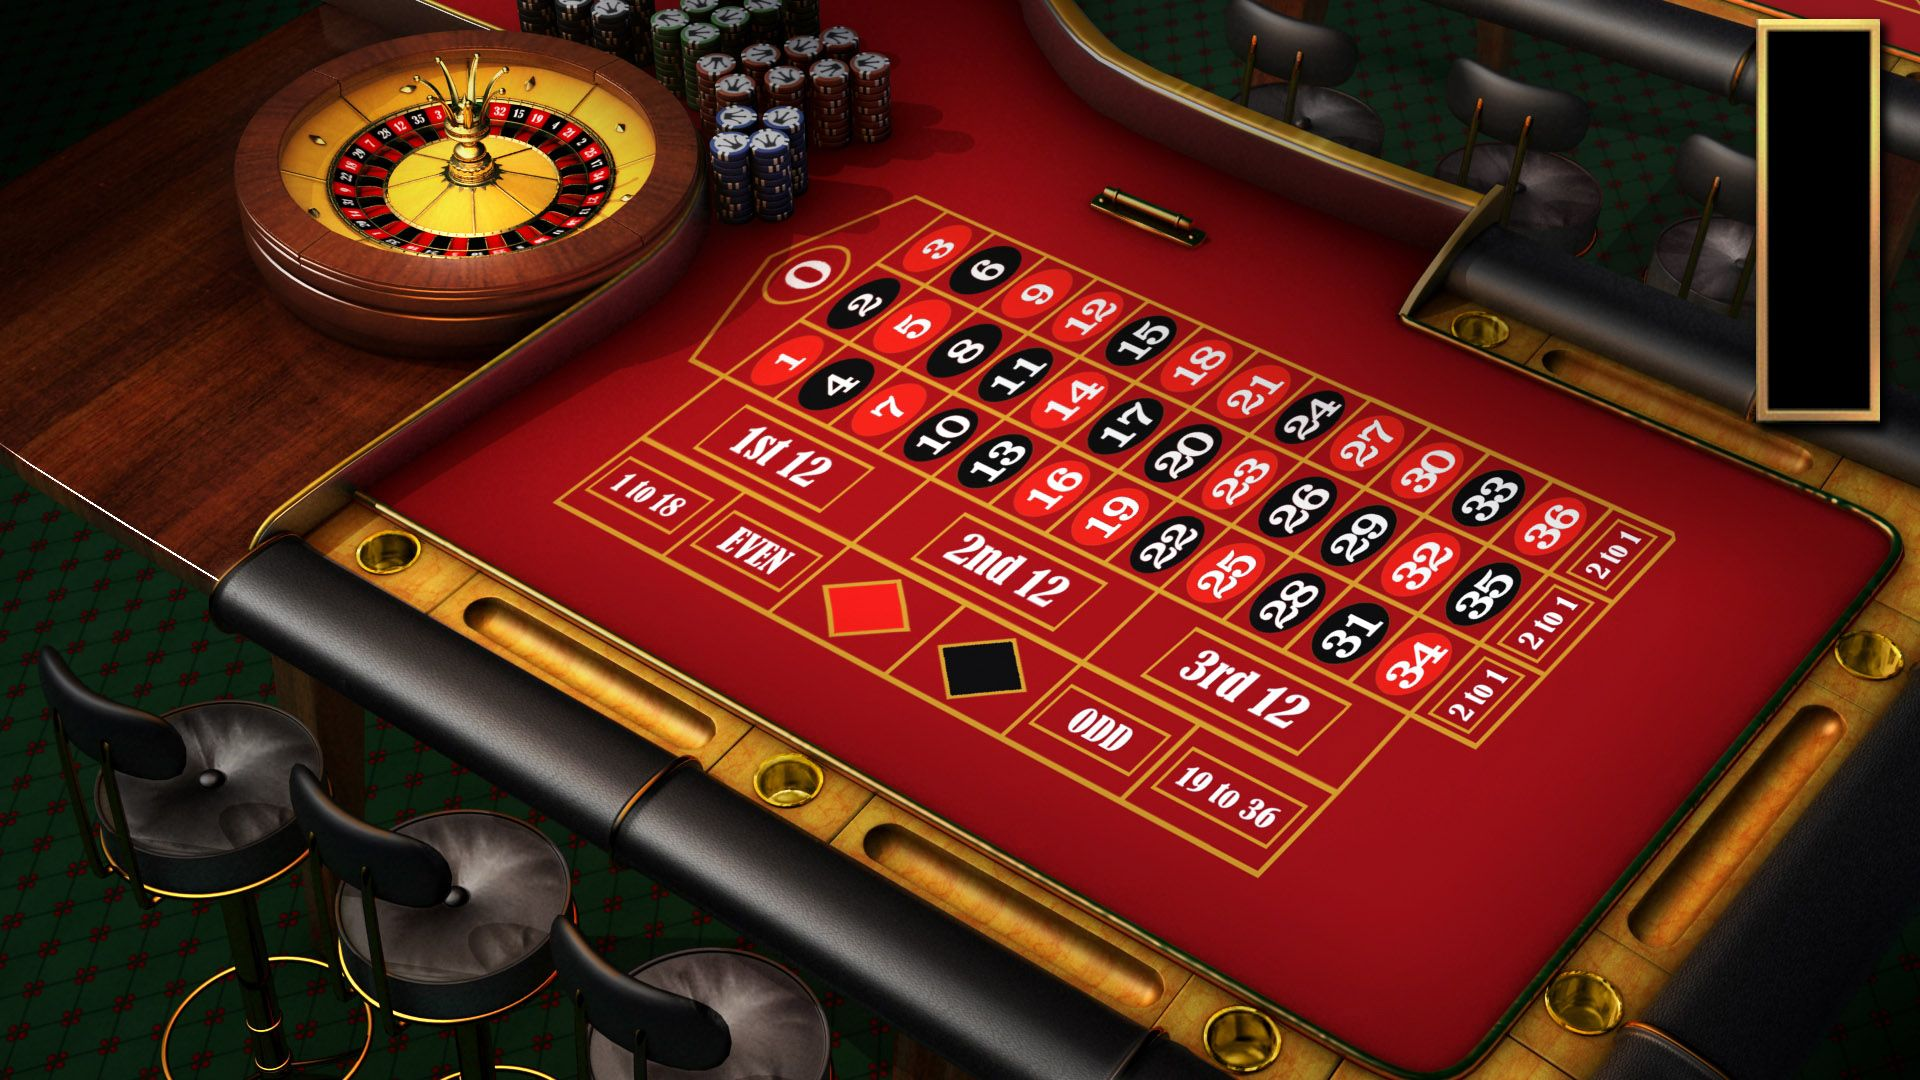 How To Begin A Business With Only Gambling